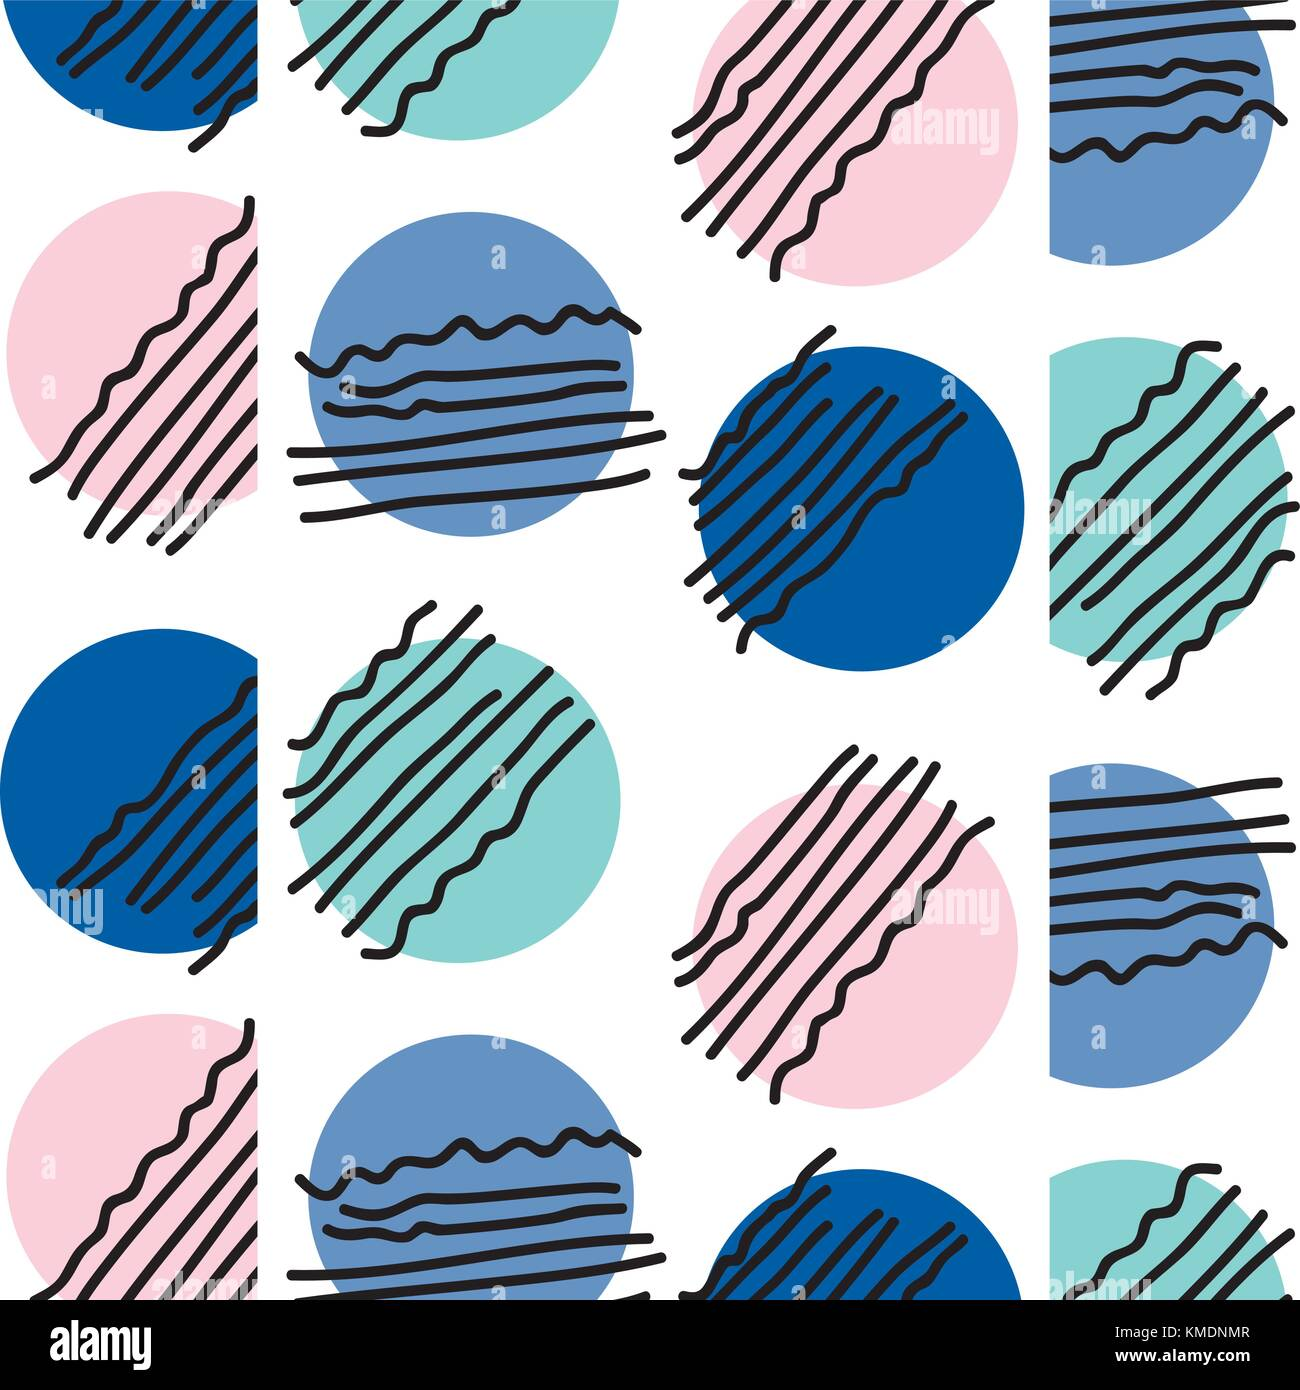 abstract circle memphis style background - Stock Image